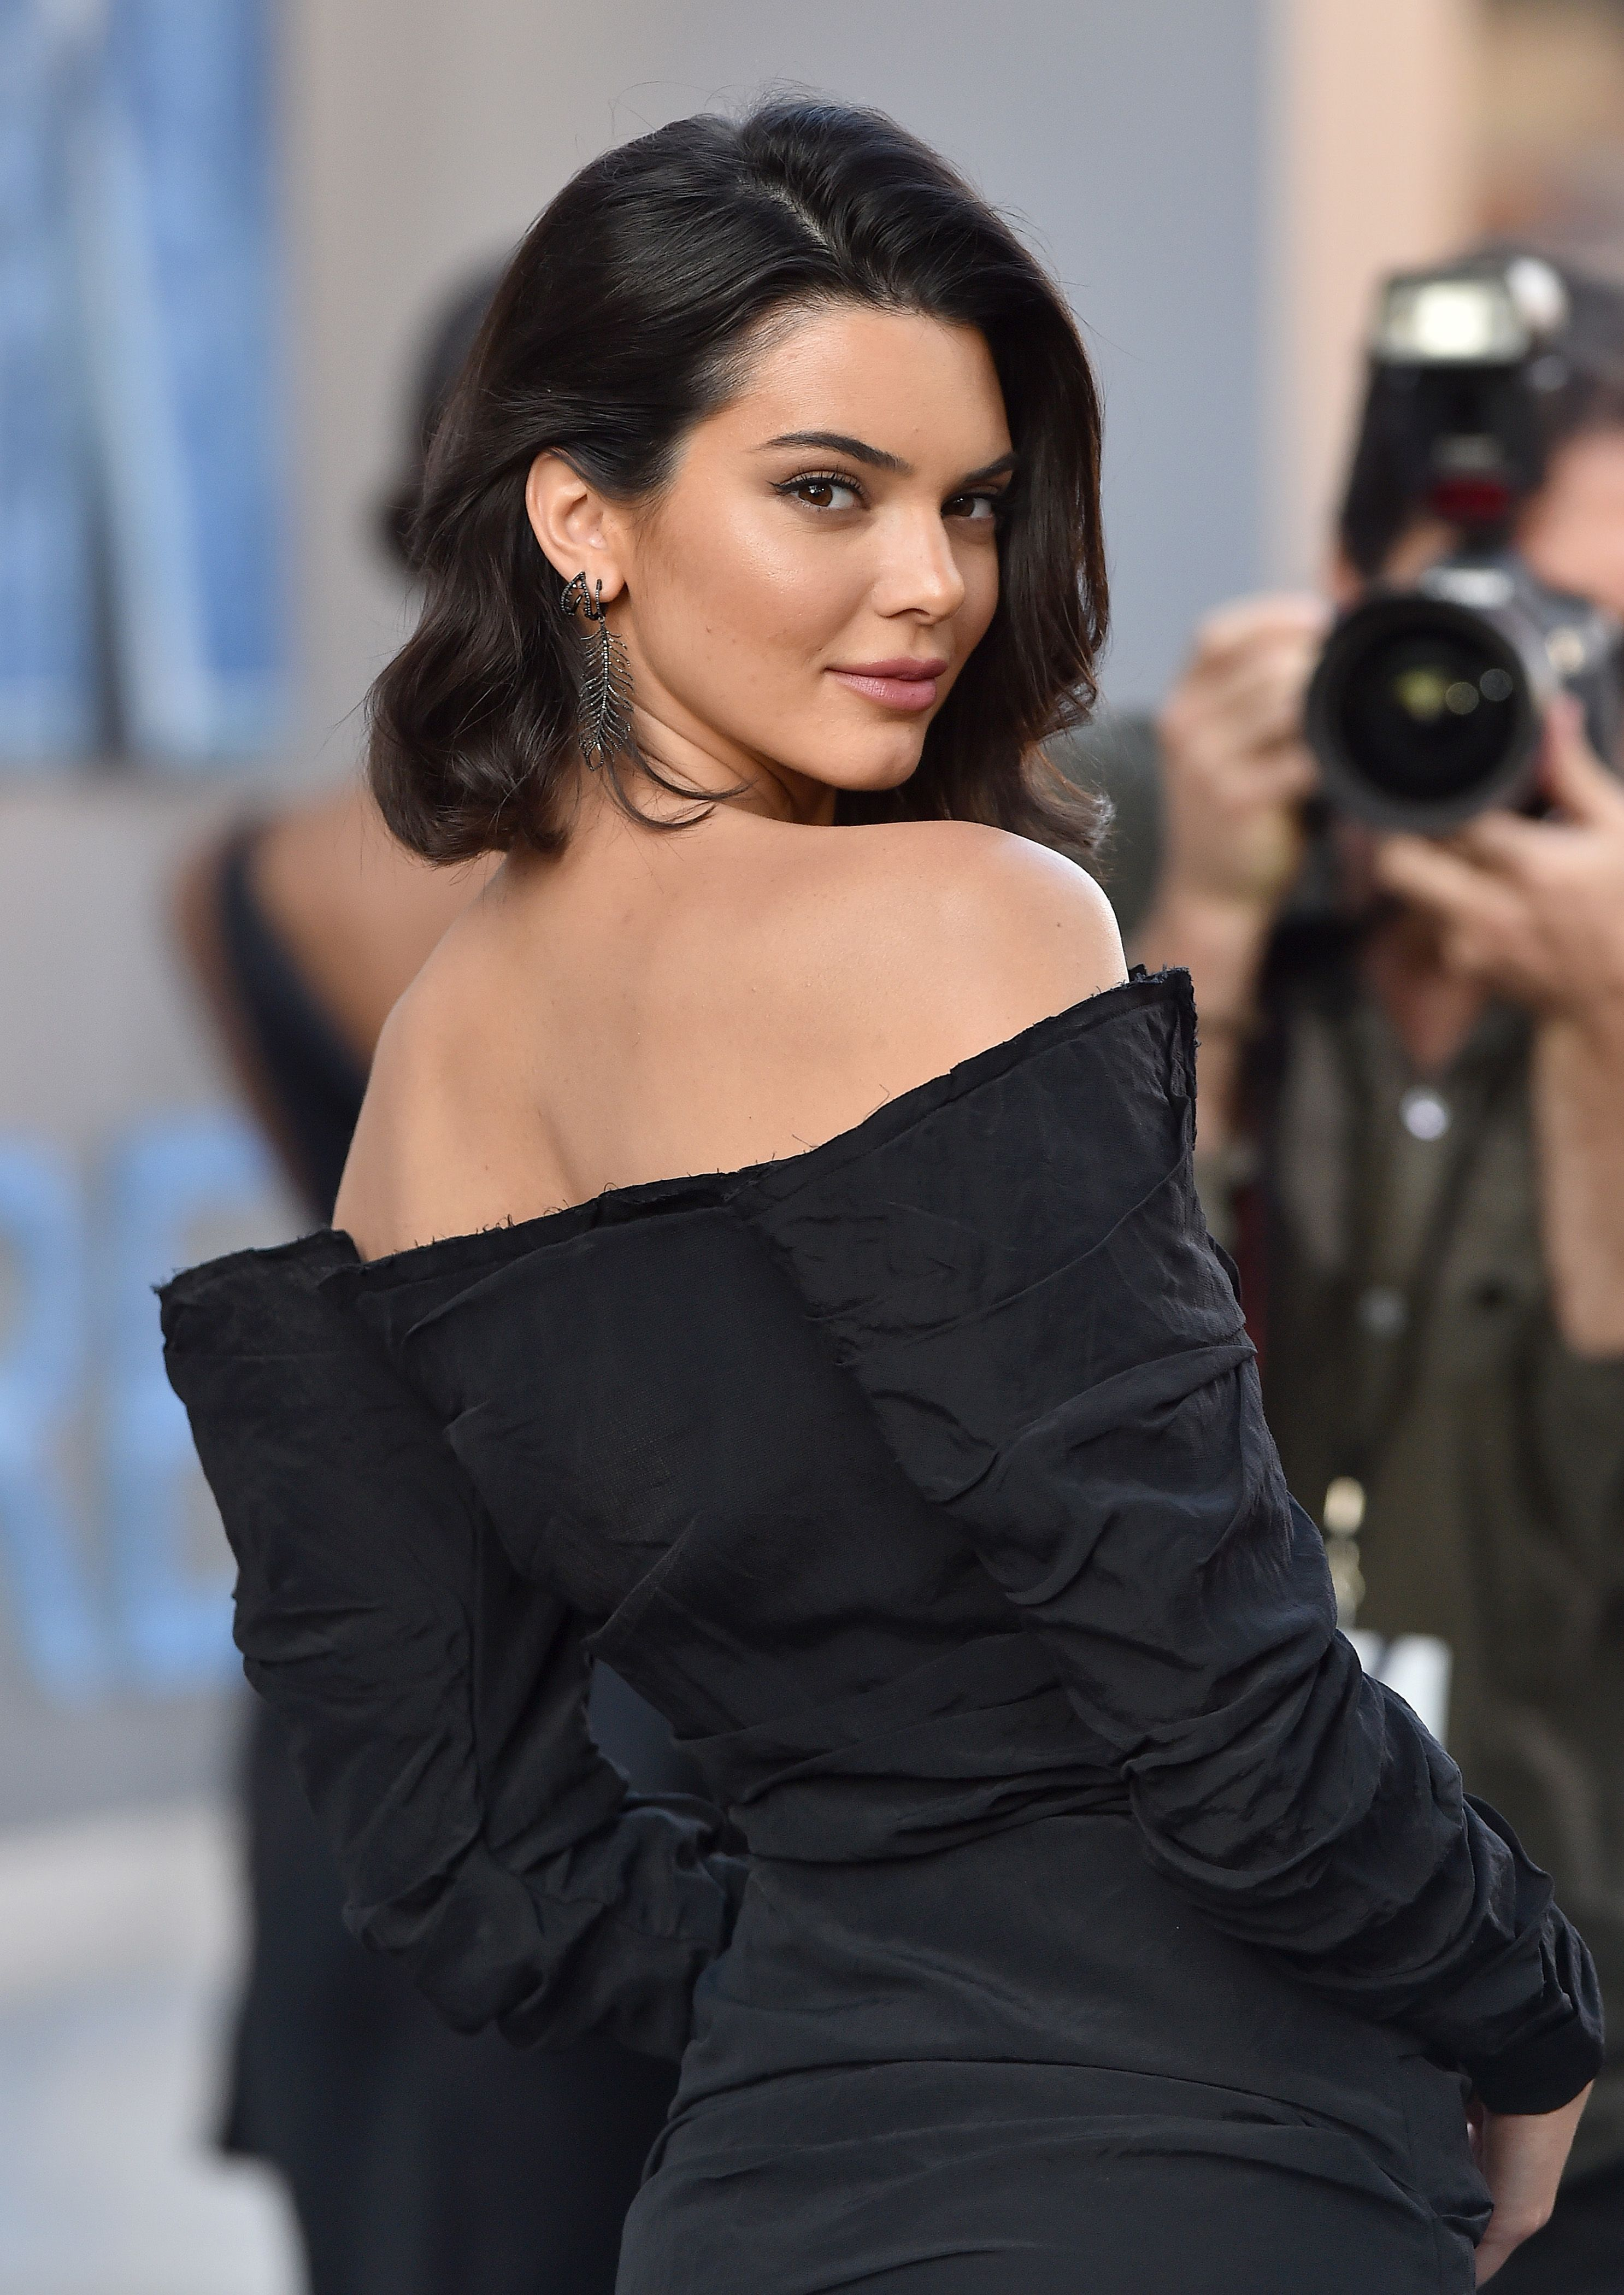 """Sad News: Kendall Jenner Has Made the """"Difficult Decision"""